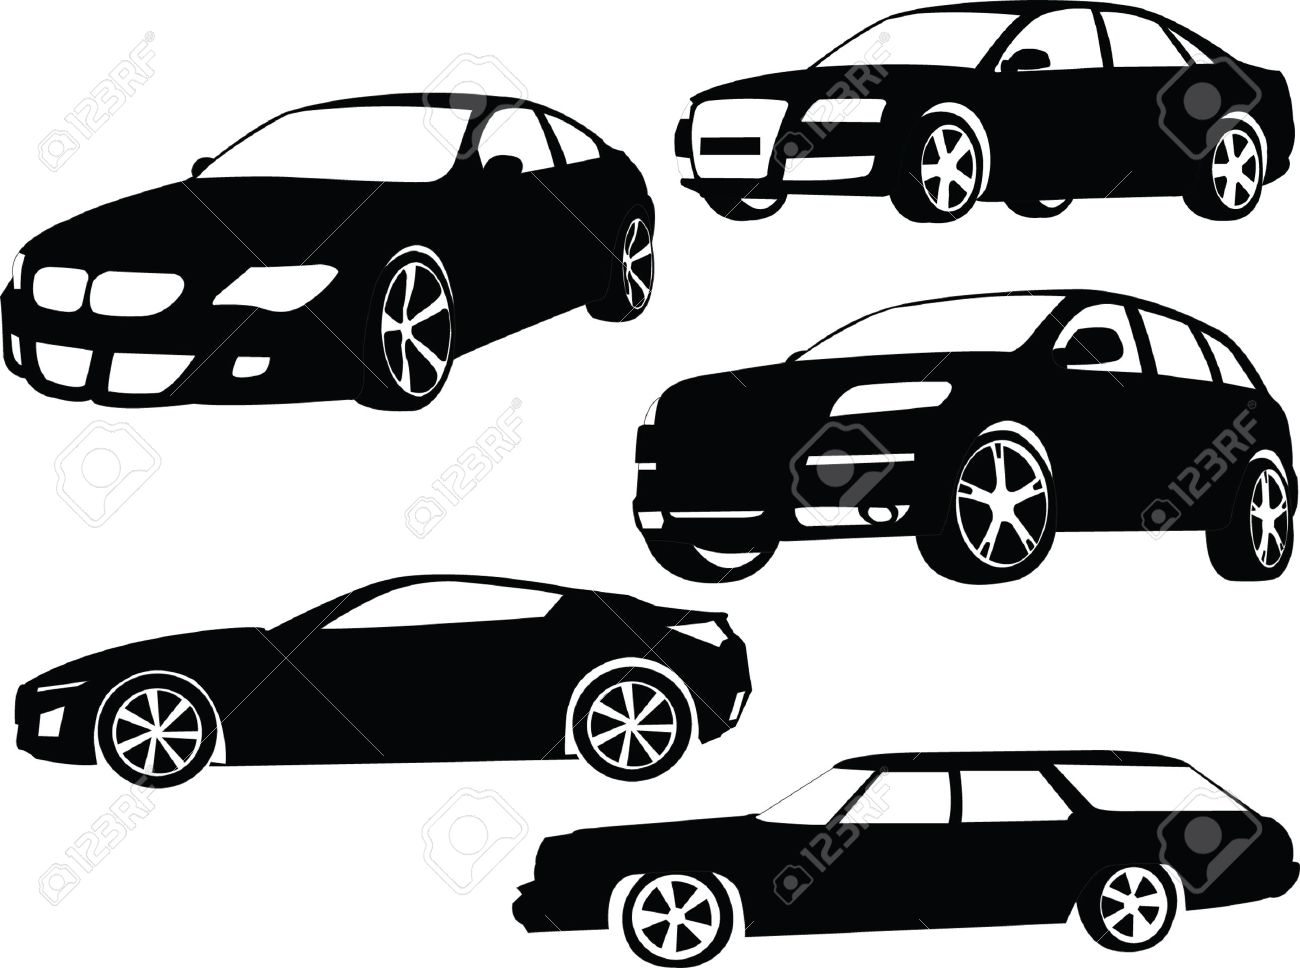 cars collection 2 - vector Stock Vector - 5073430